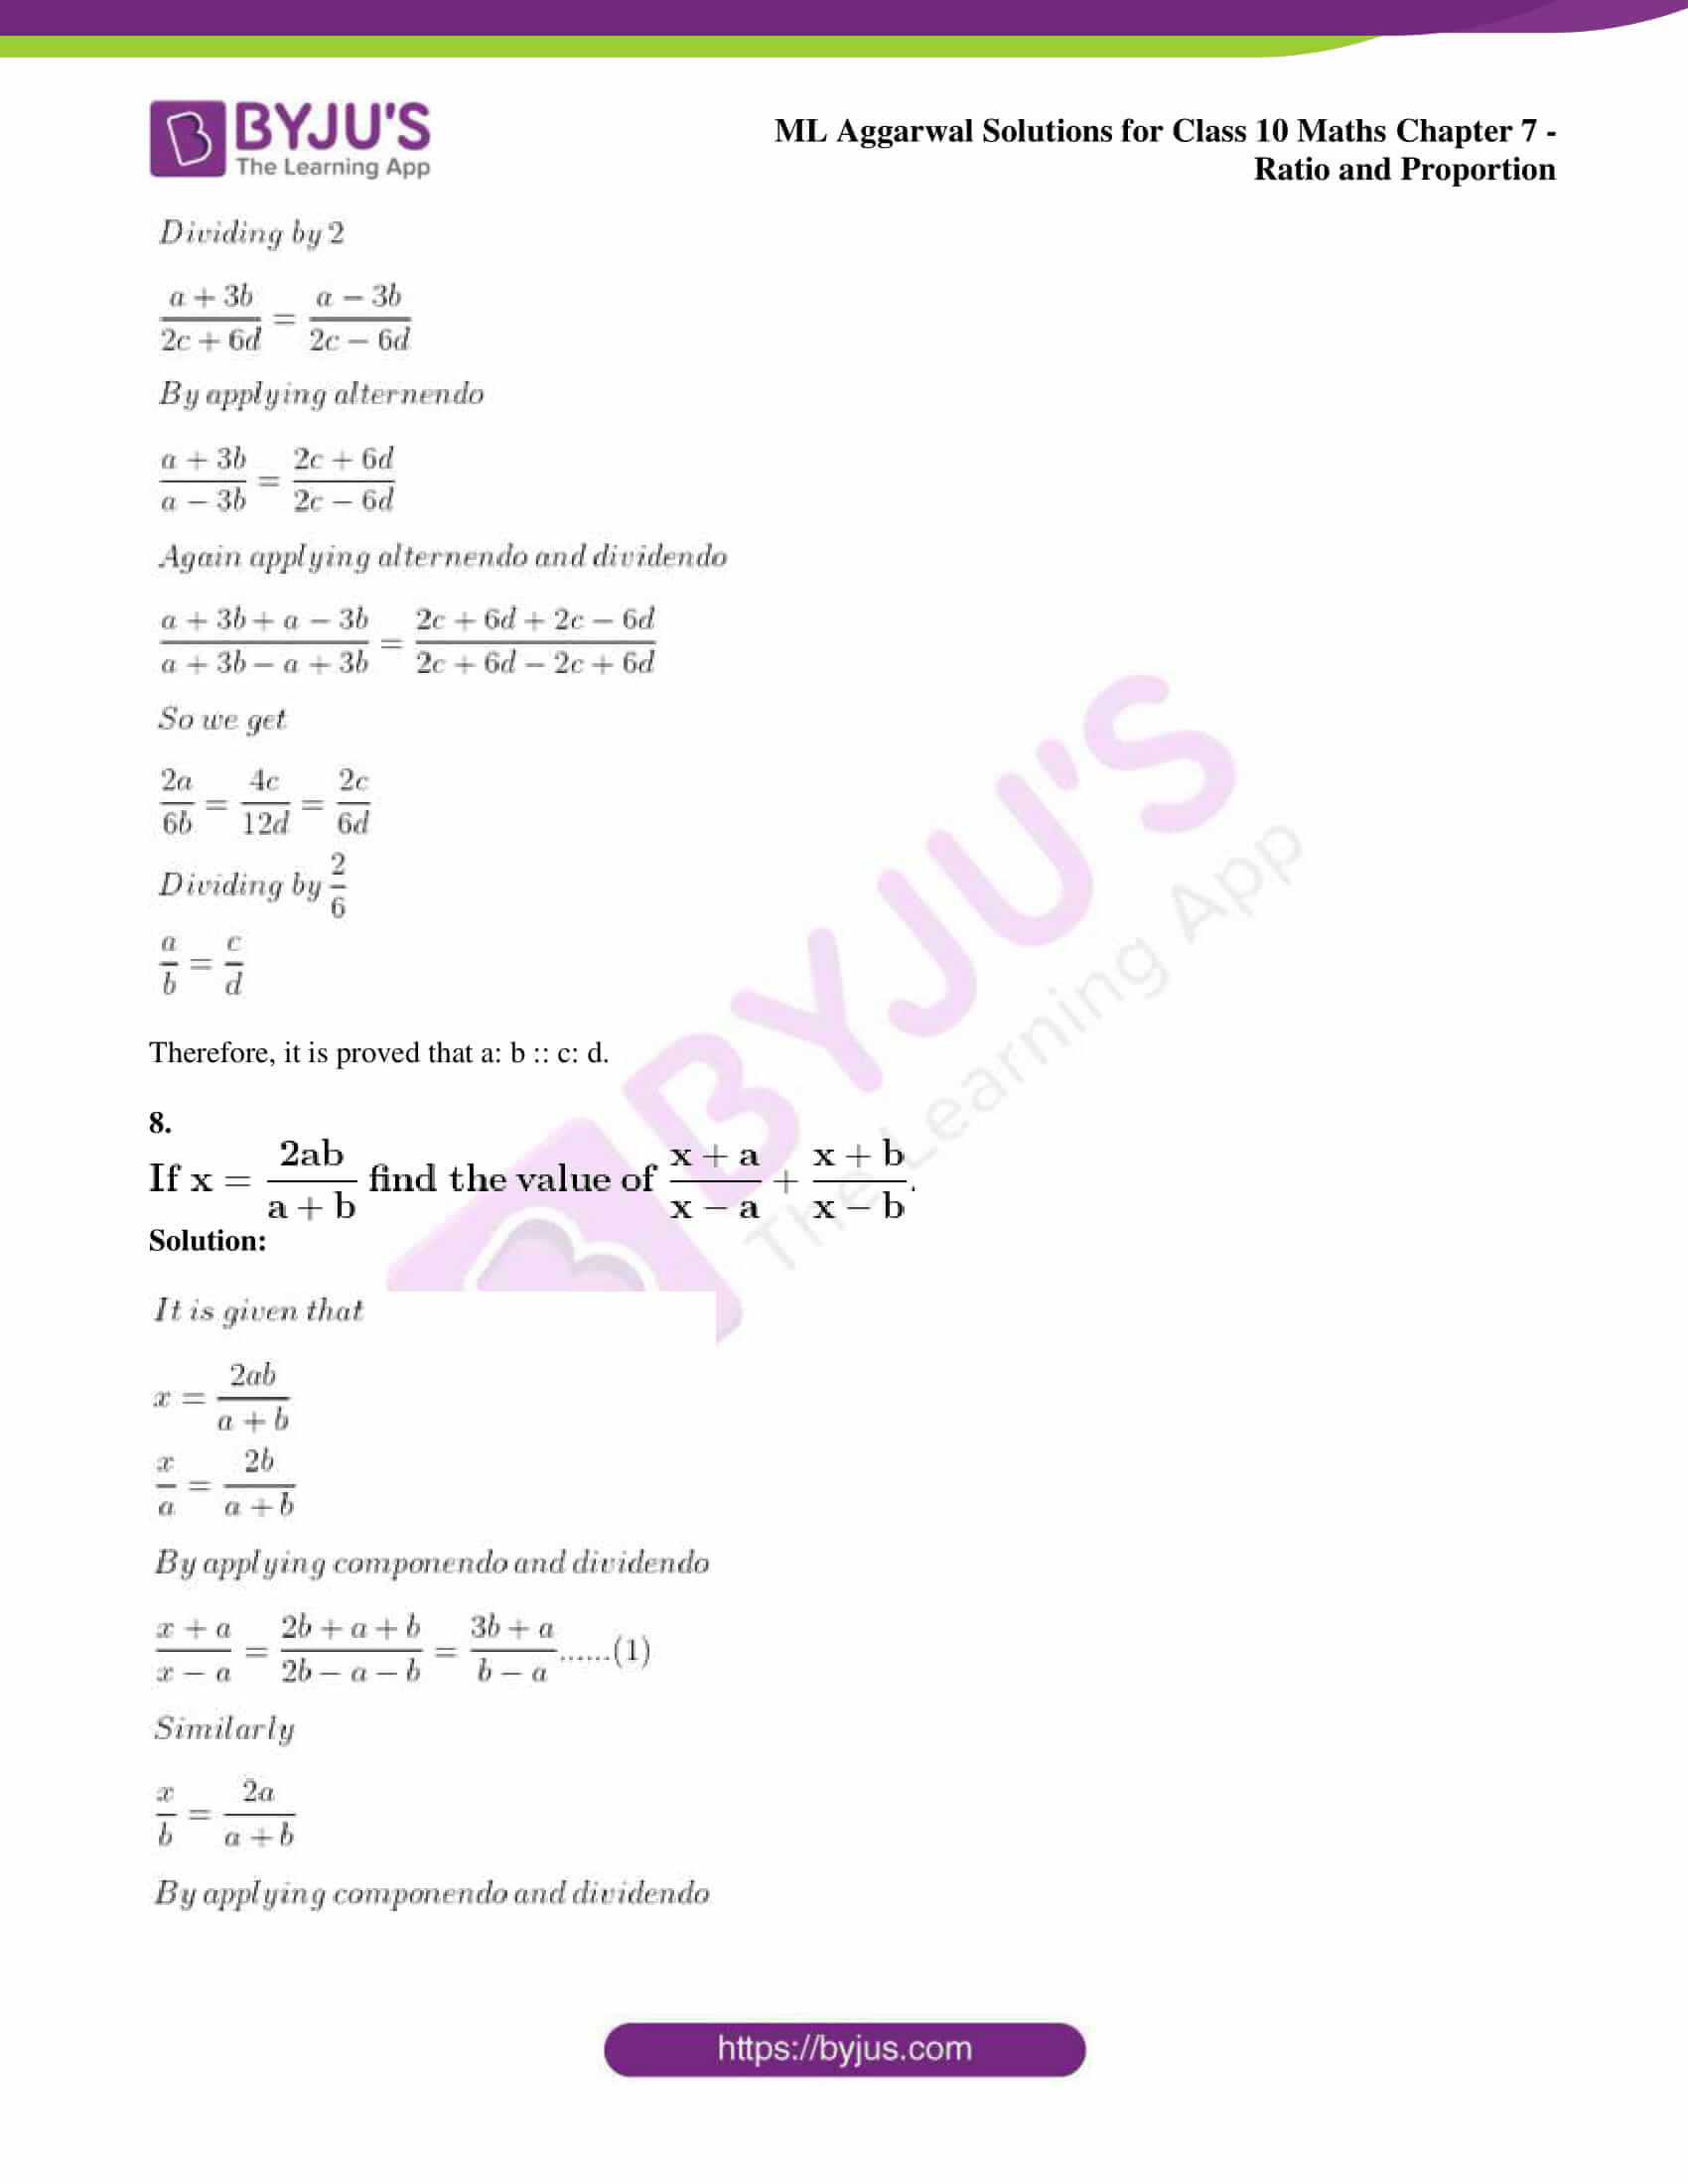 ml aggarwal solutions for class 10 maths chapter 7 50